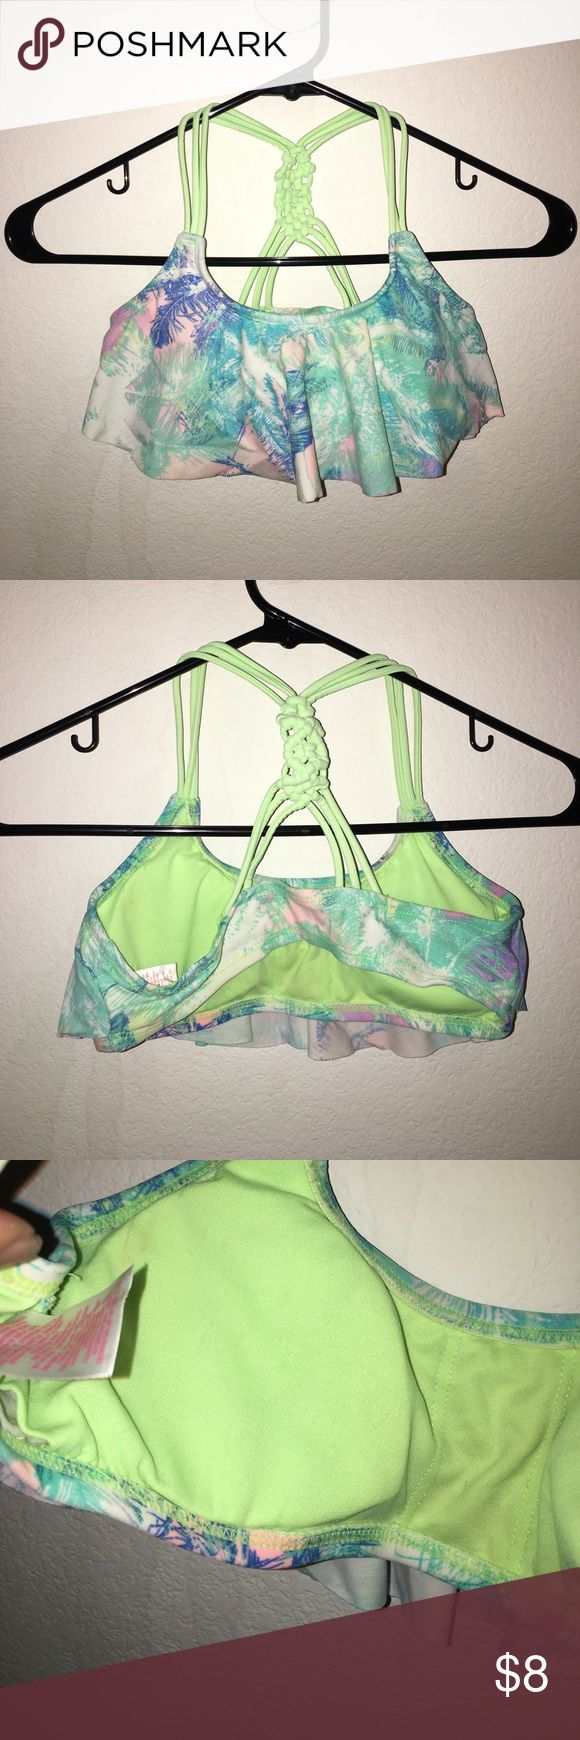 Girls Swim Top Worn a couple times, pale blue and white bandeau swim top. The straps are short, recommended for younger women Xhilaration Swim Bikinis